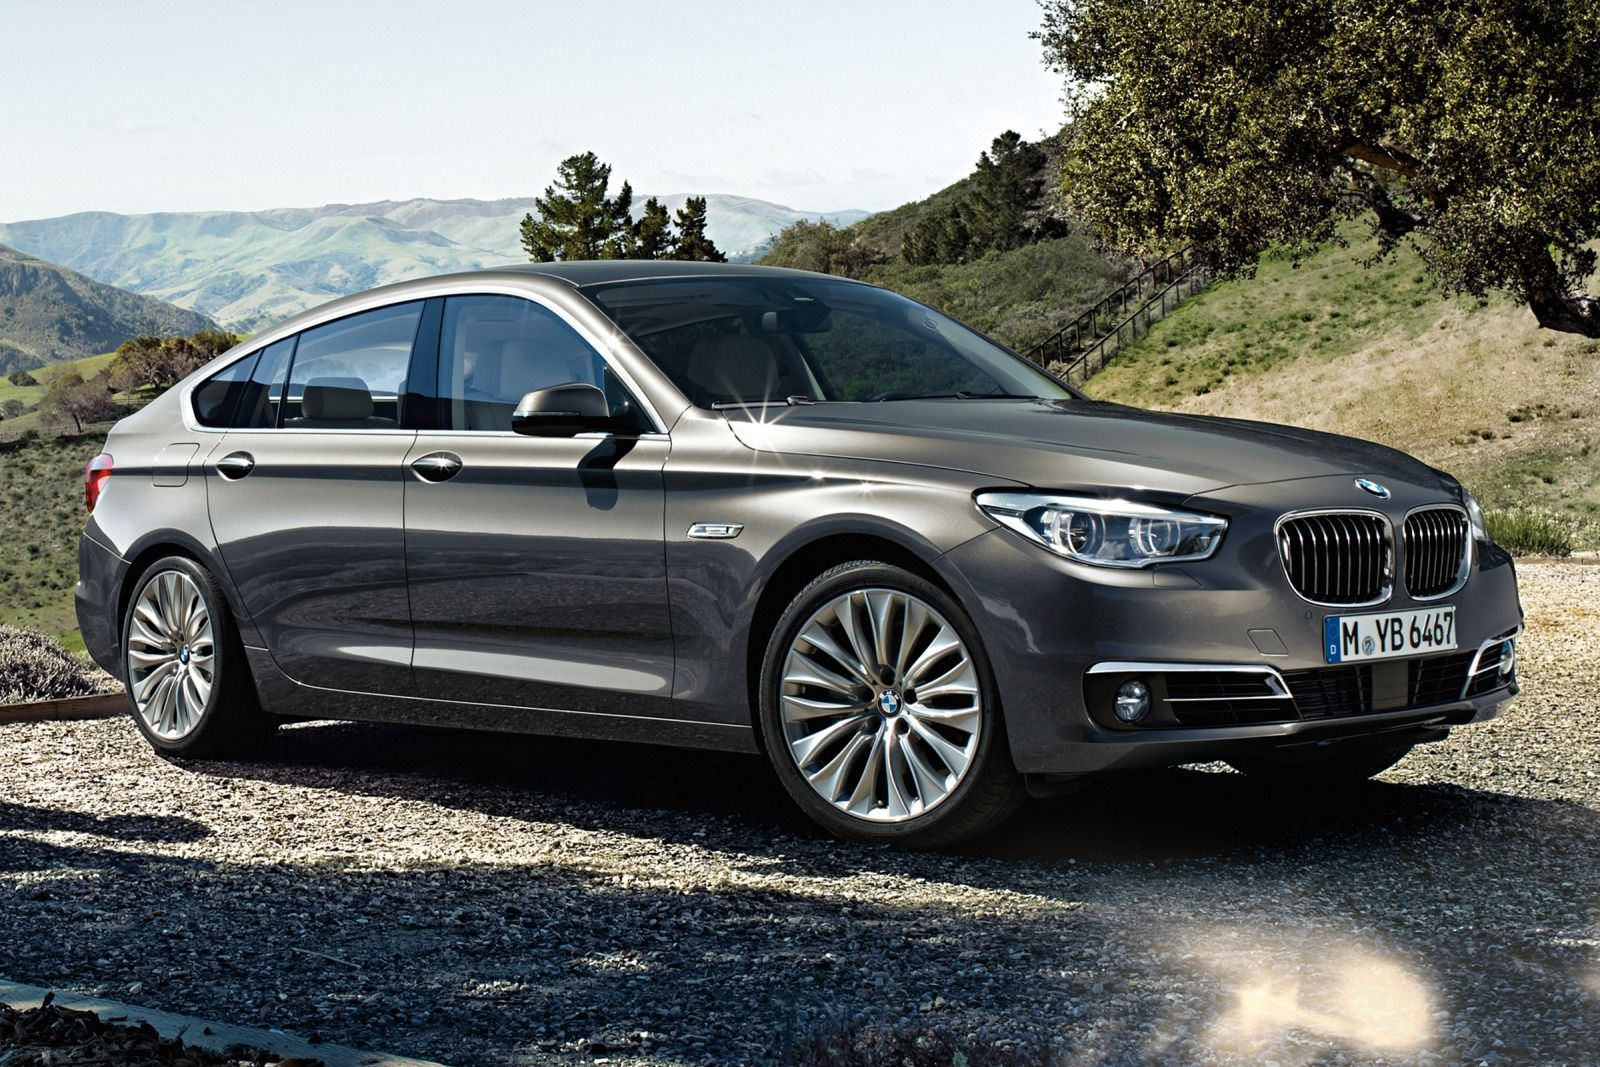 The 2015 bmw 5 series gran turismo is a practical hatchback alternative to luxury suvs is this the future of the premium family vehicle